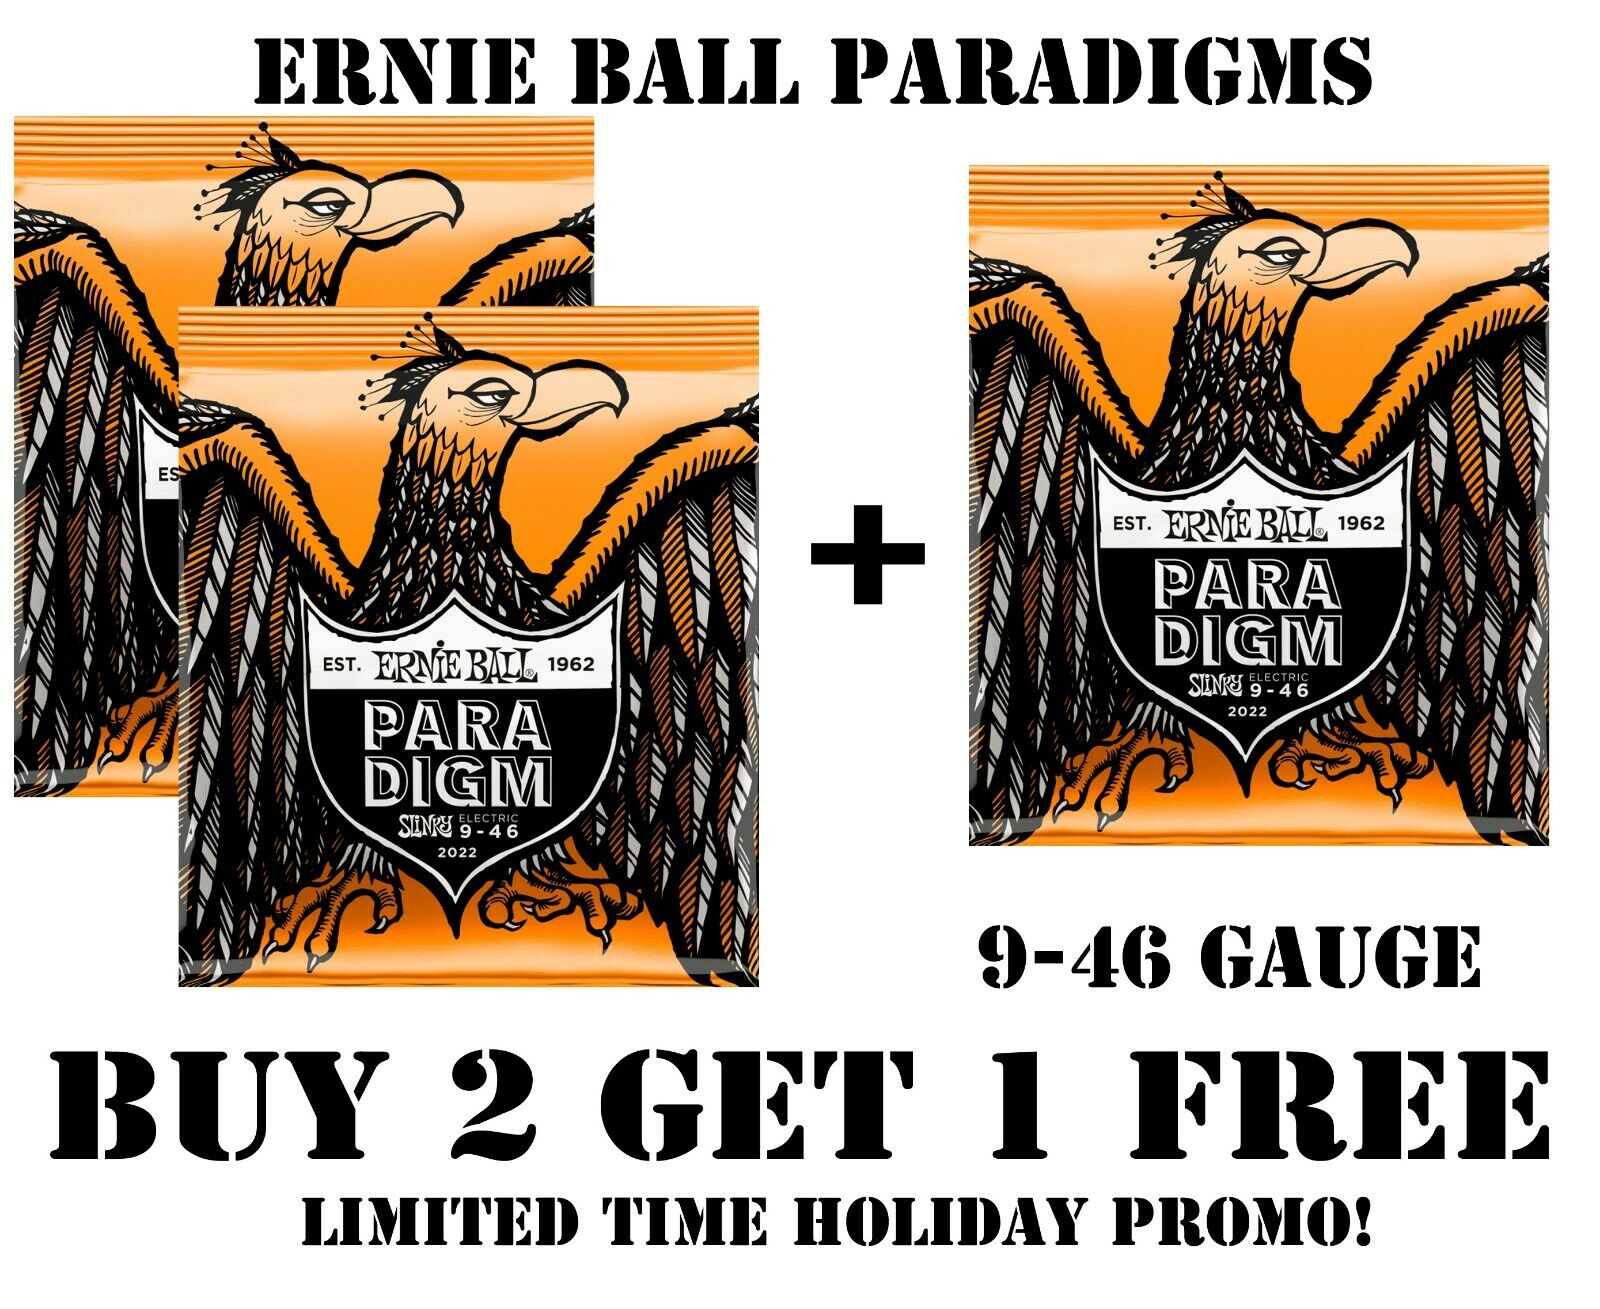 Ernie Ball Paradigm Hybrid Slinky Electric Guitar Strings 9-